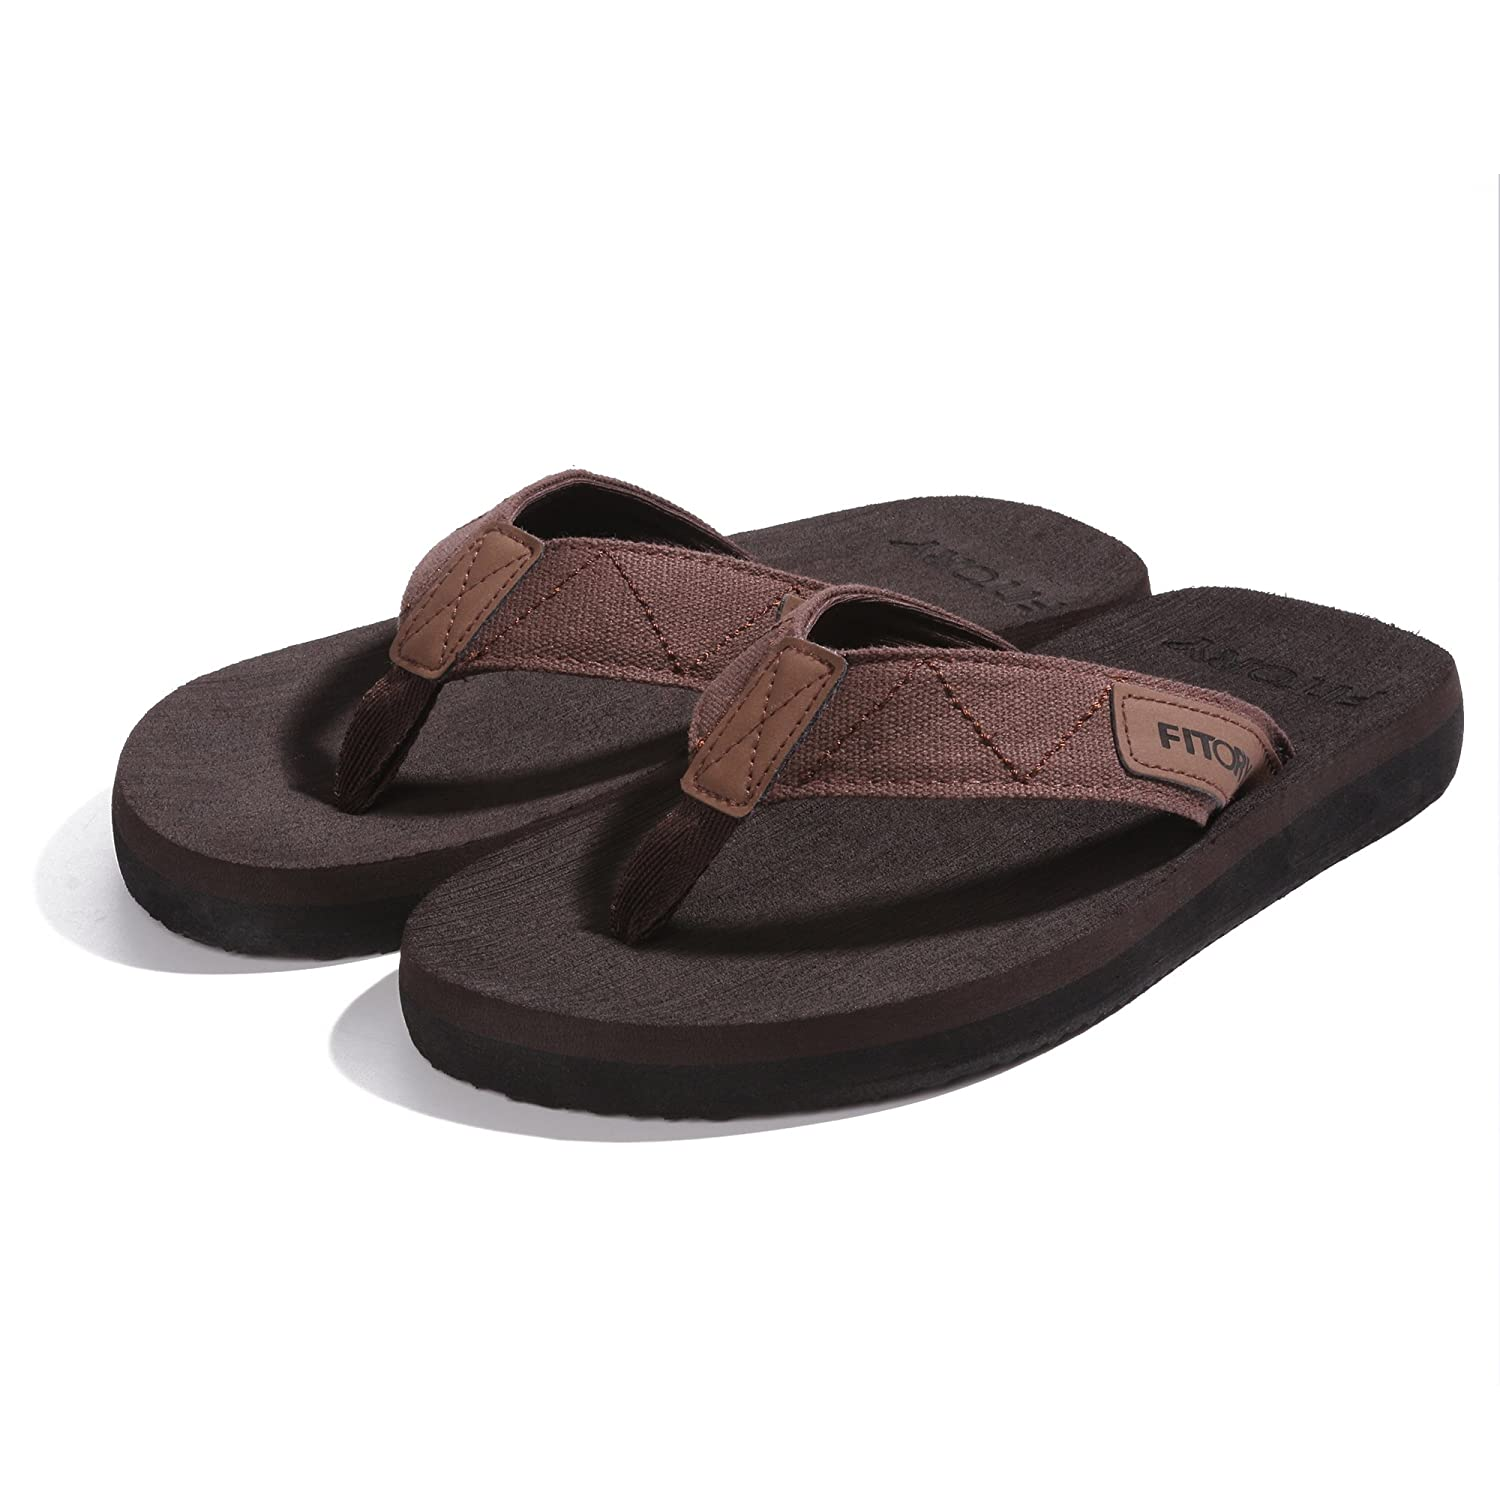 05a48f116bd4a FITORY Men s Flip-Flops Thongs Comfort Slippers for Beach Pool   Amazon.co.uk  Shoes   Bags